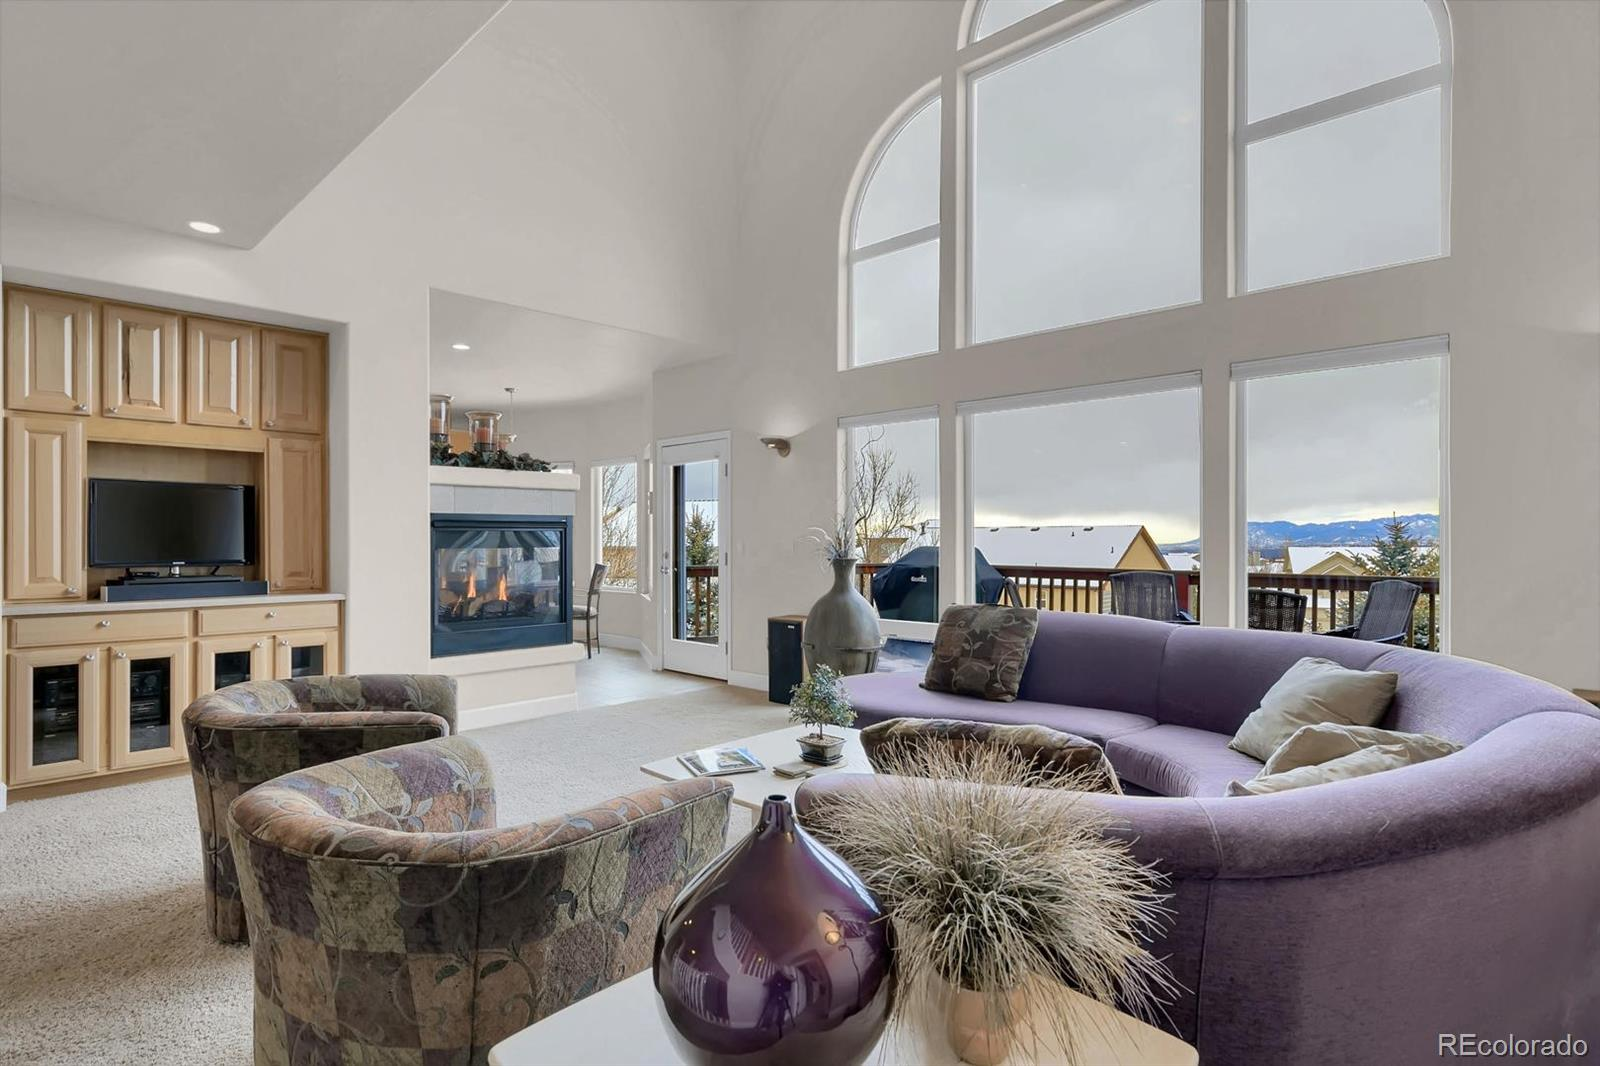 MLS# 5159811 - 8 - 207 Green Rock Place, Monument, CO 80132